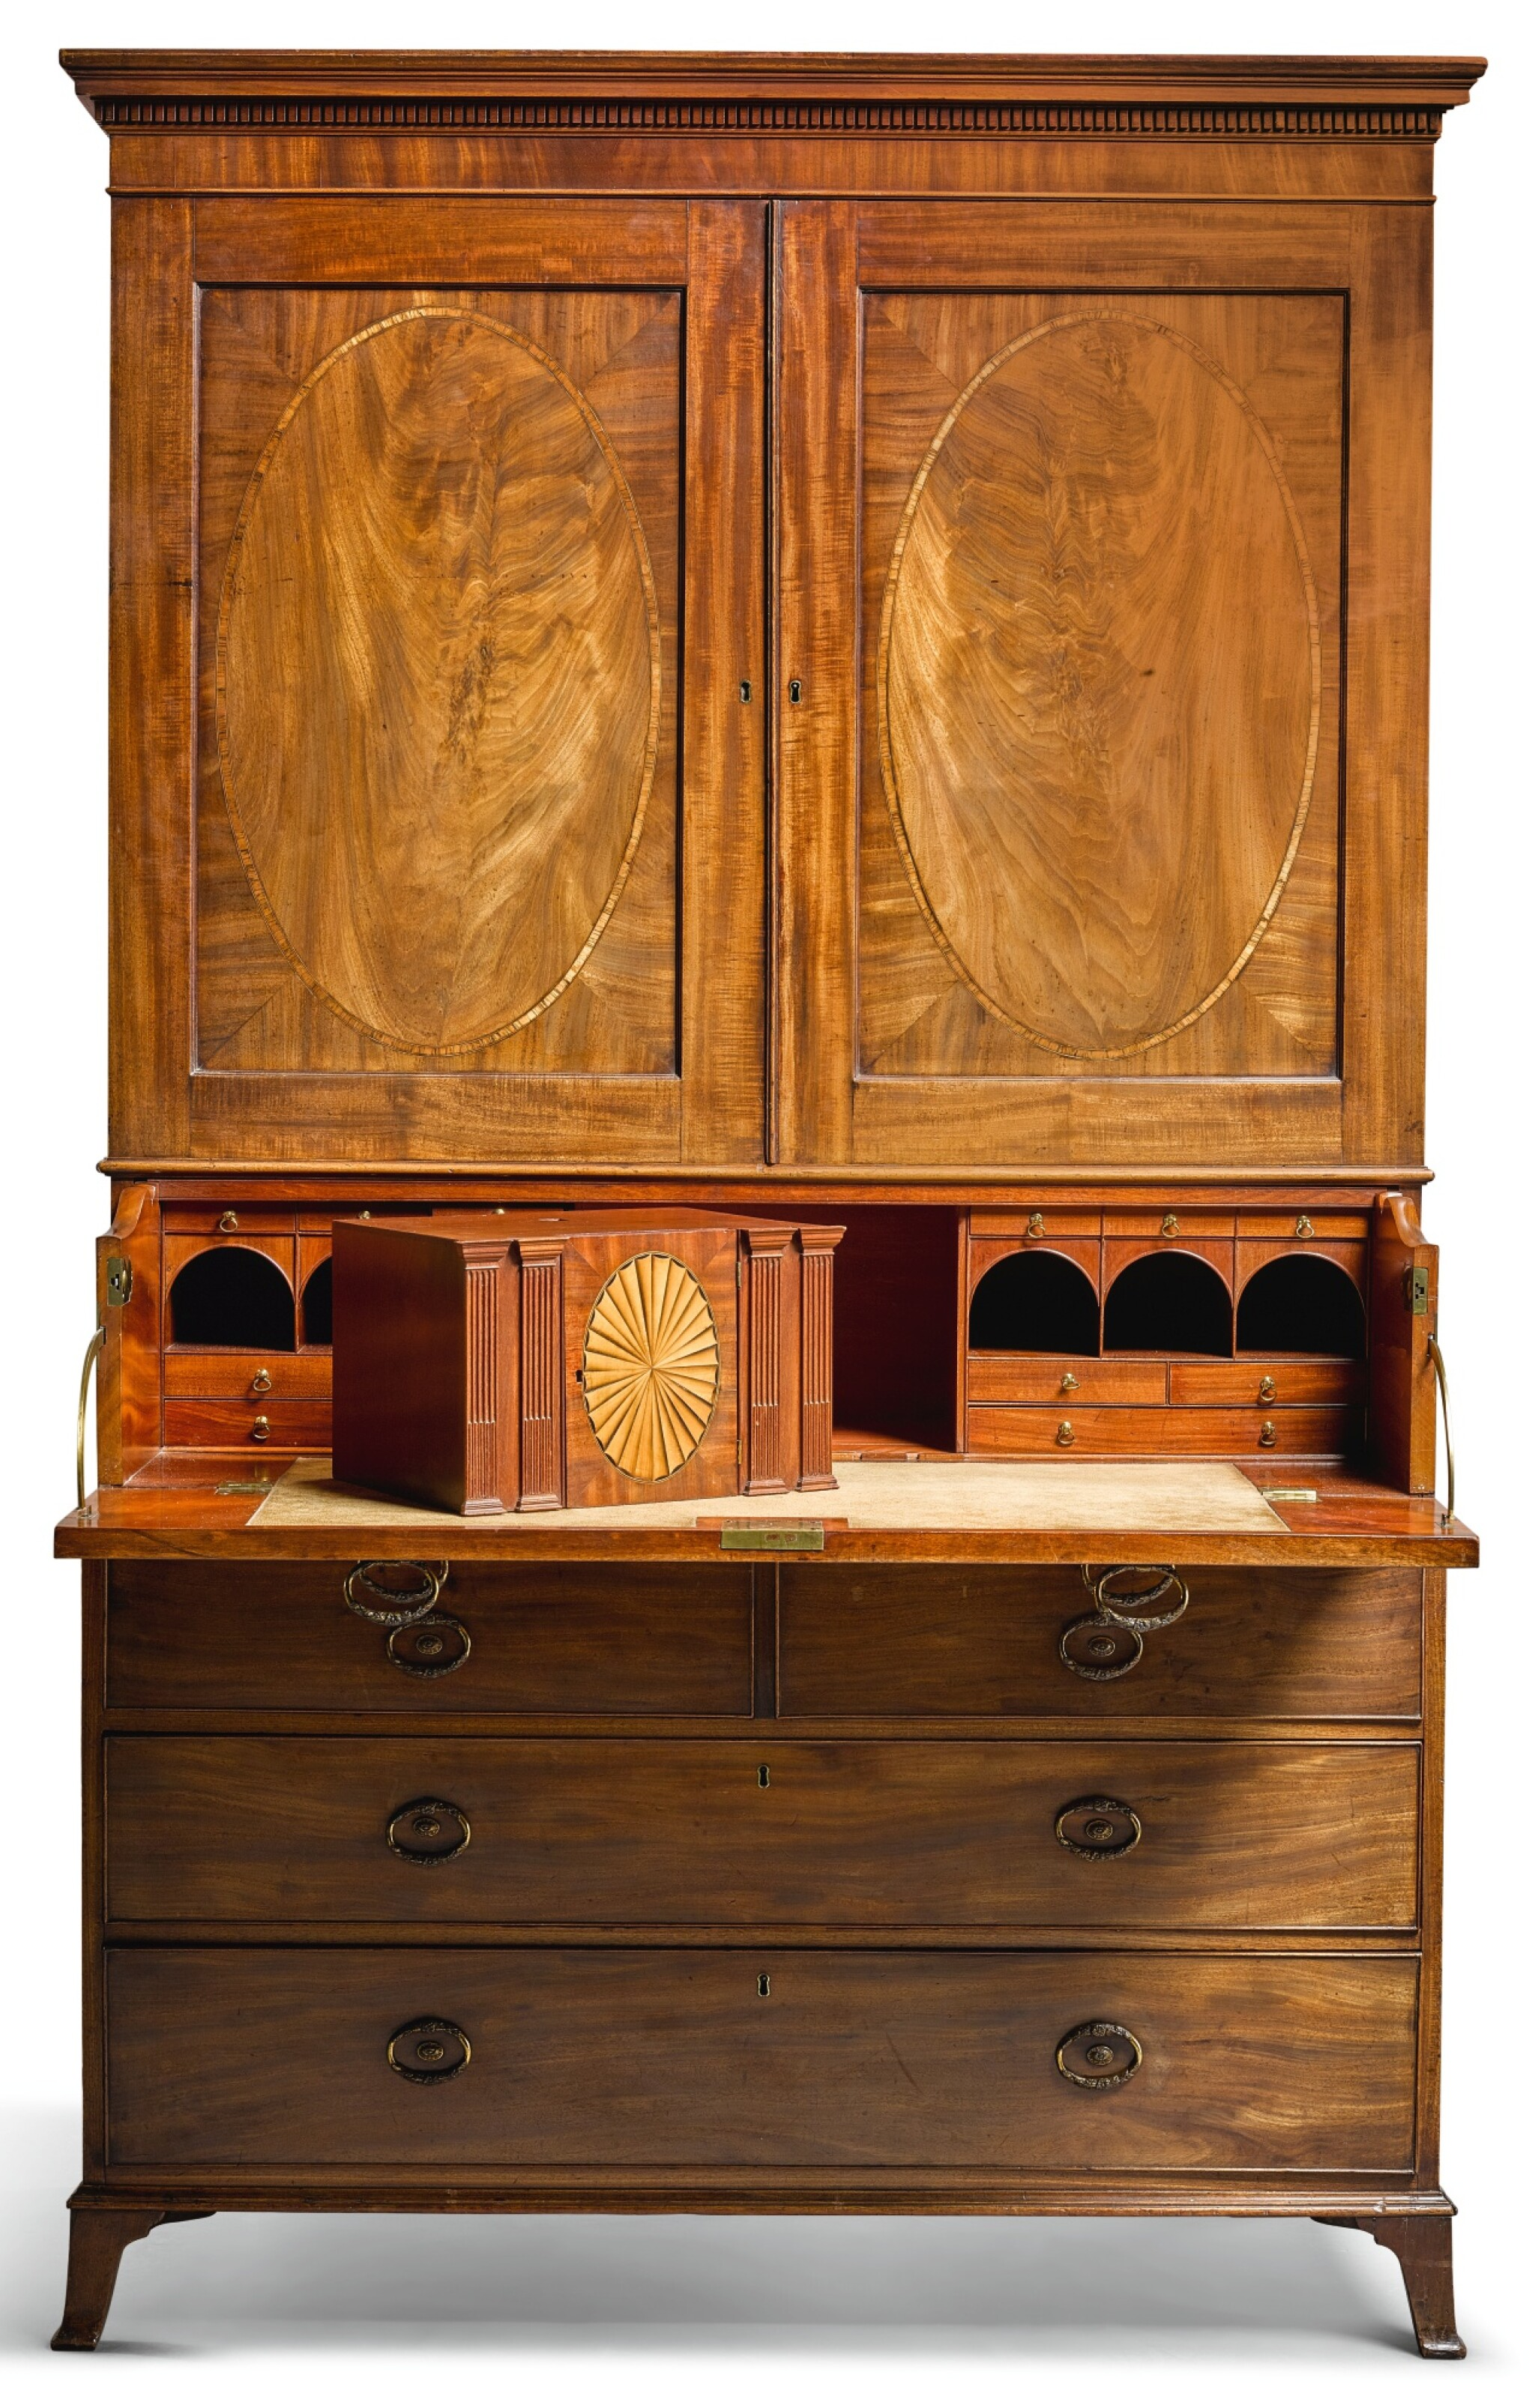 View 1 of Lot 109.  A GEORGE III MAHOGANY SECRETAIRE PRESS CUPBOARD, CIRCA 1790, ATTRIBUTED TO GILLOWS.